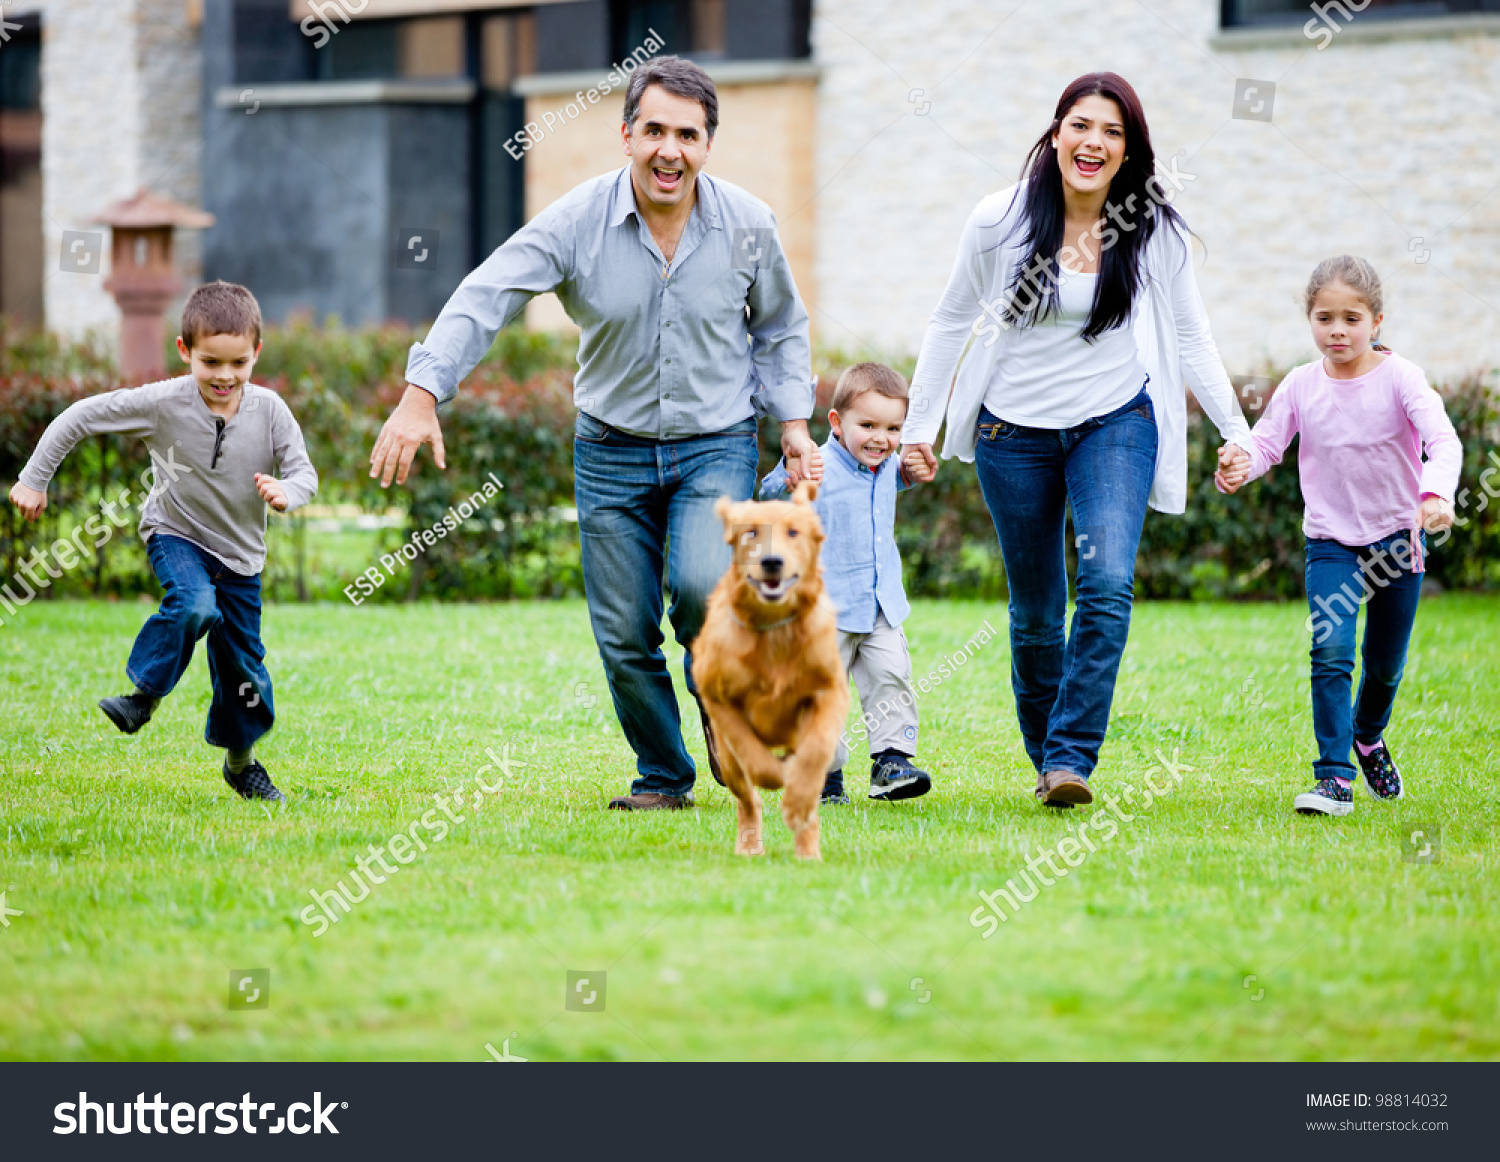 Image result for picture of a happy family